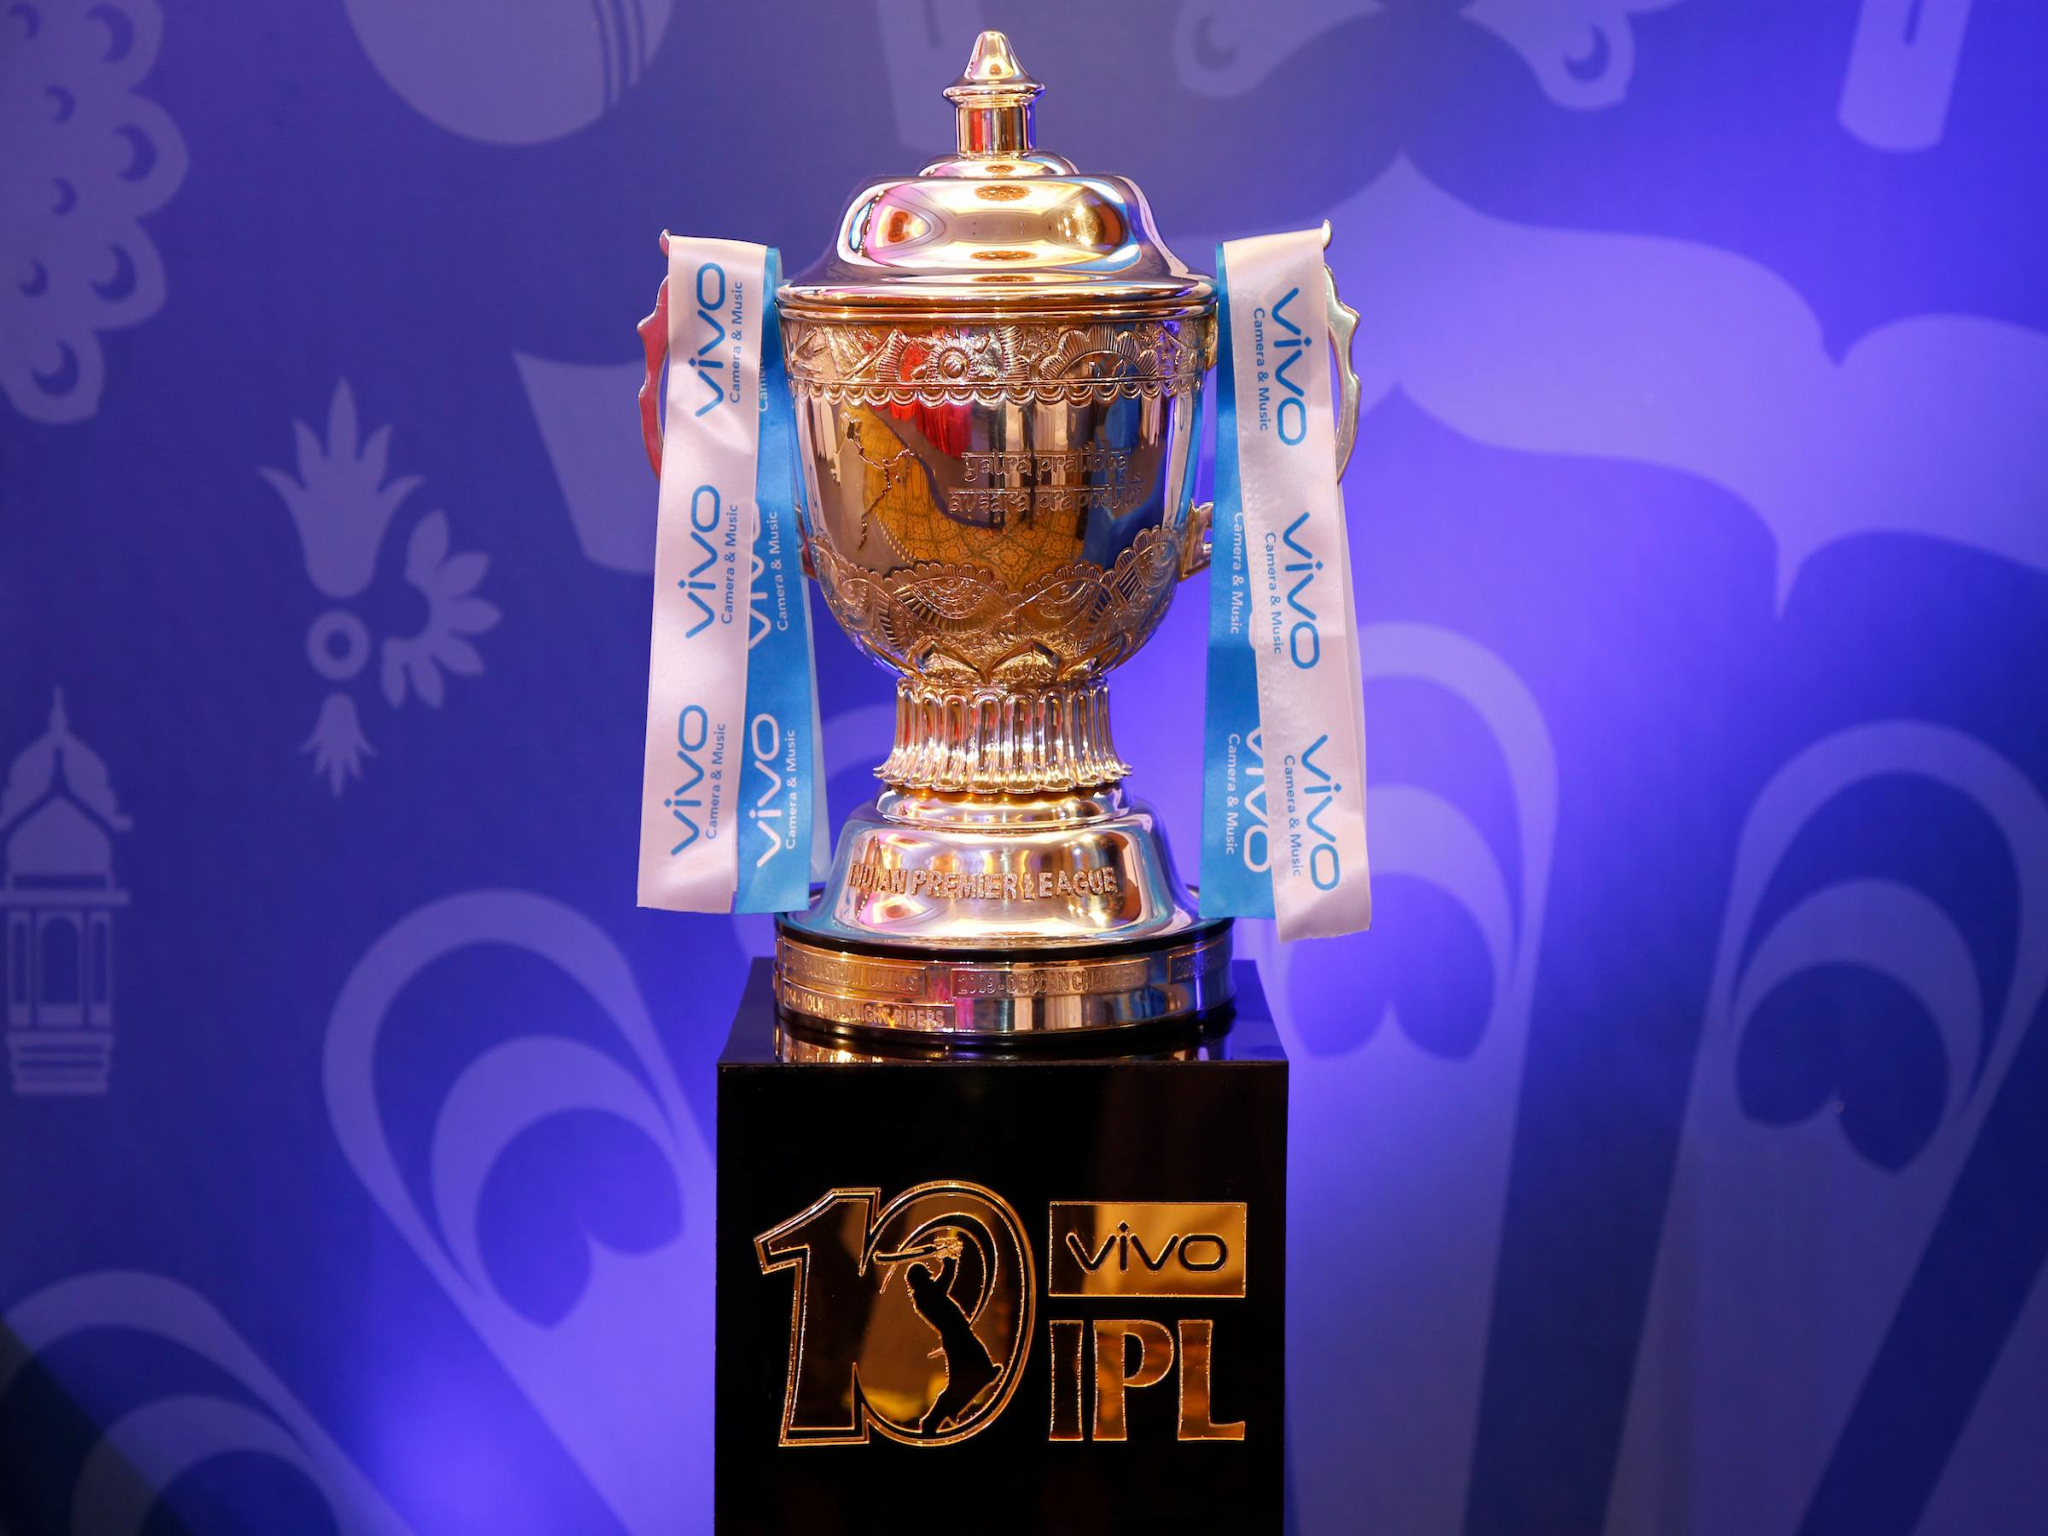 Ipl T20 2018 Trophy Cup Hd Wallpaper